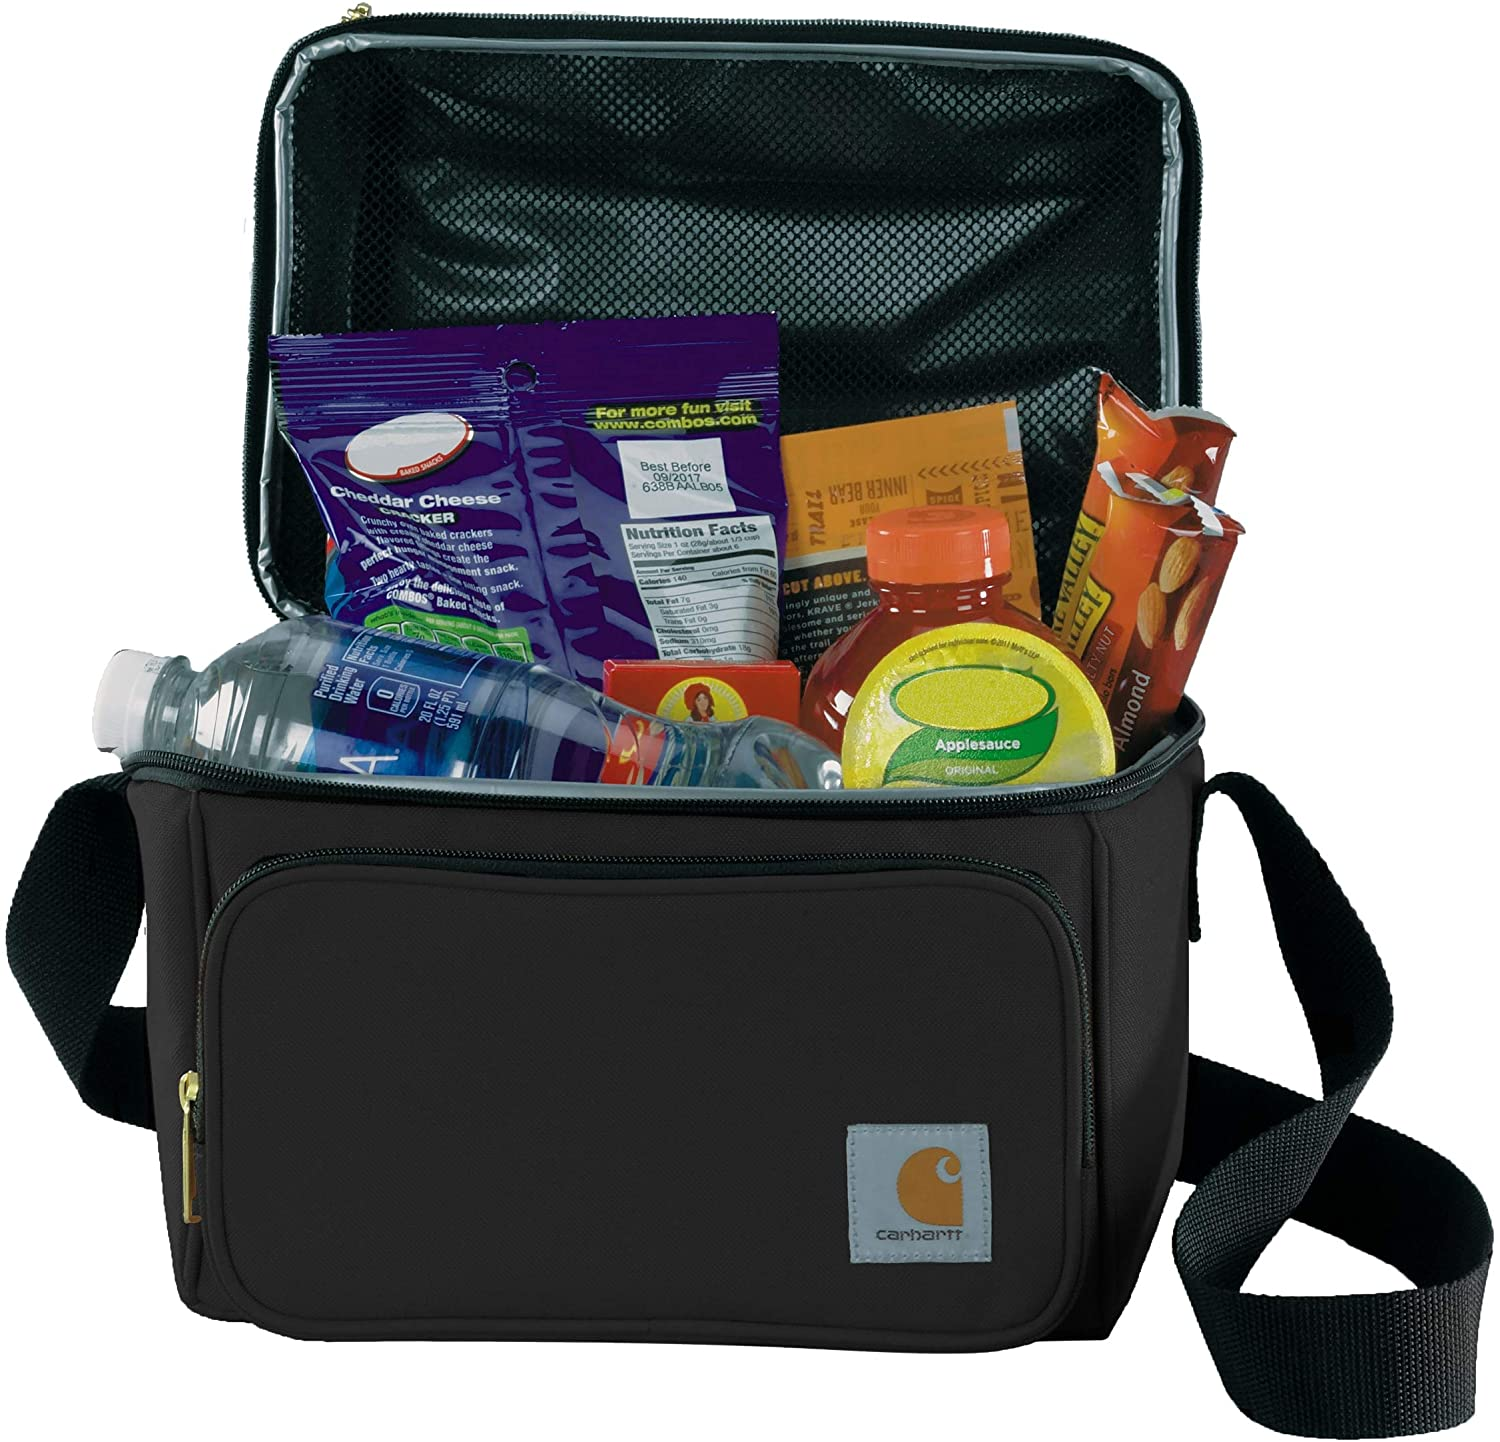 lunch cooler for work